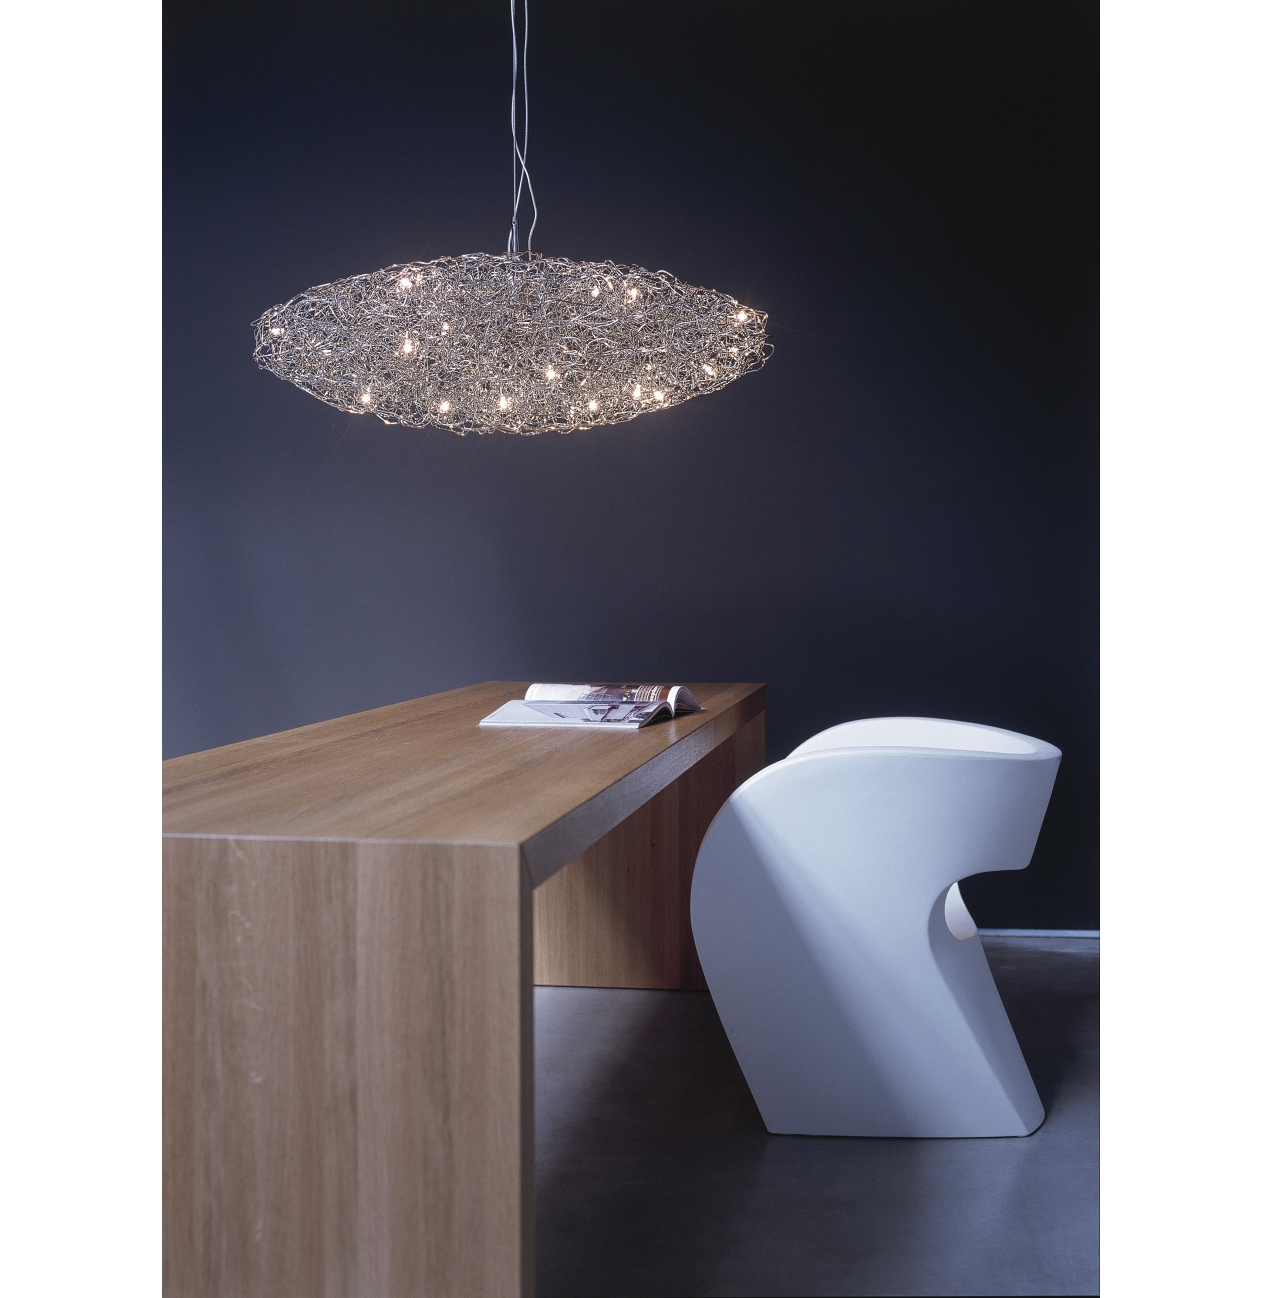 brand van egmond hanglamp crystal waters ufo versteeg lichtstudio. Black Bedroom Furniture Sets. Home Design Ideas